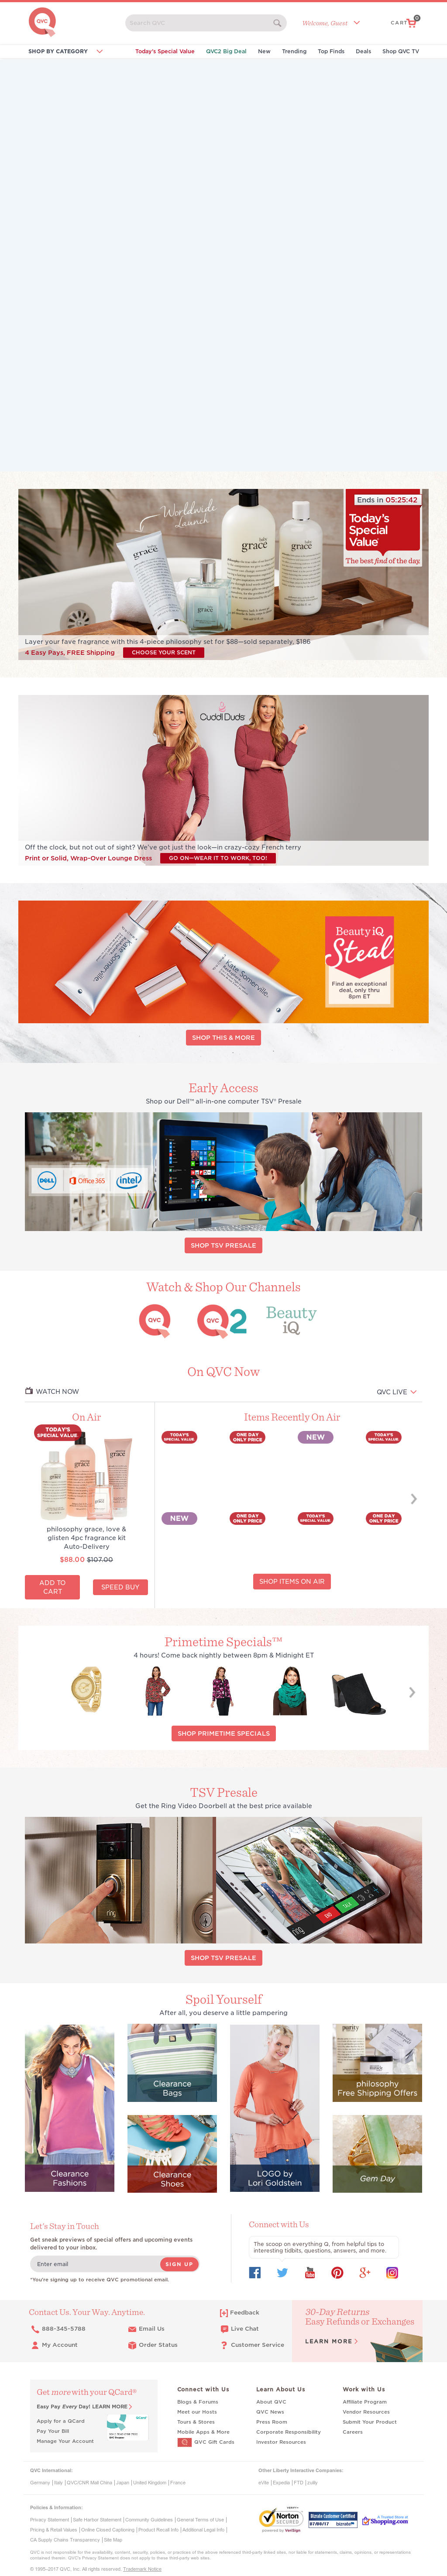 qvc website history